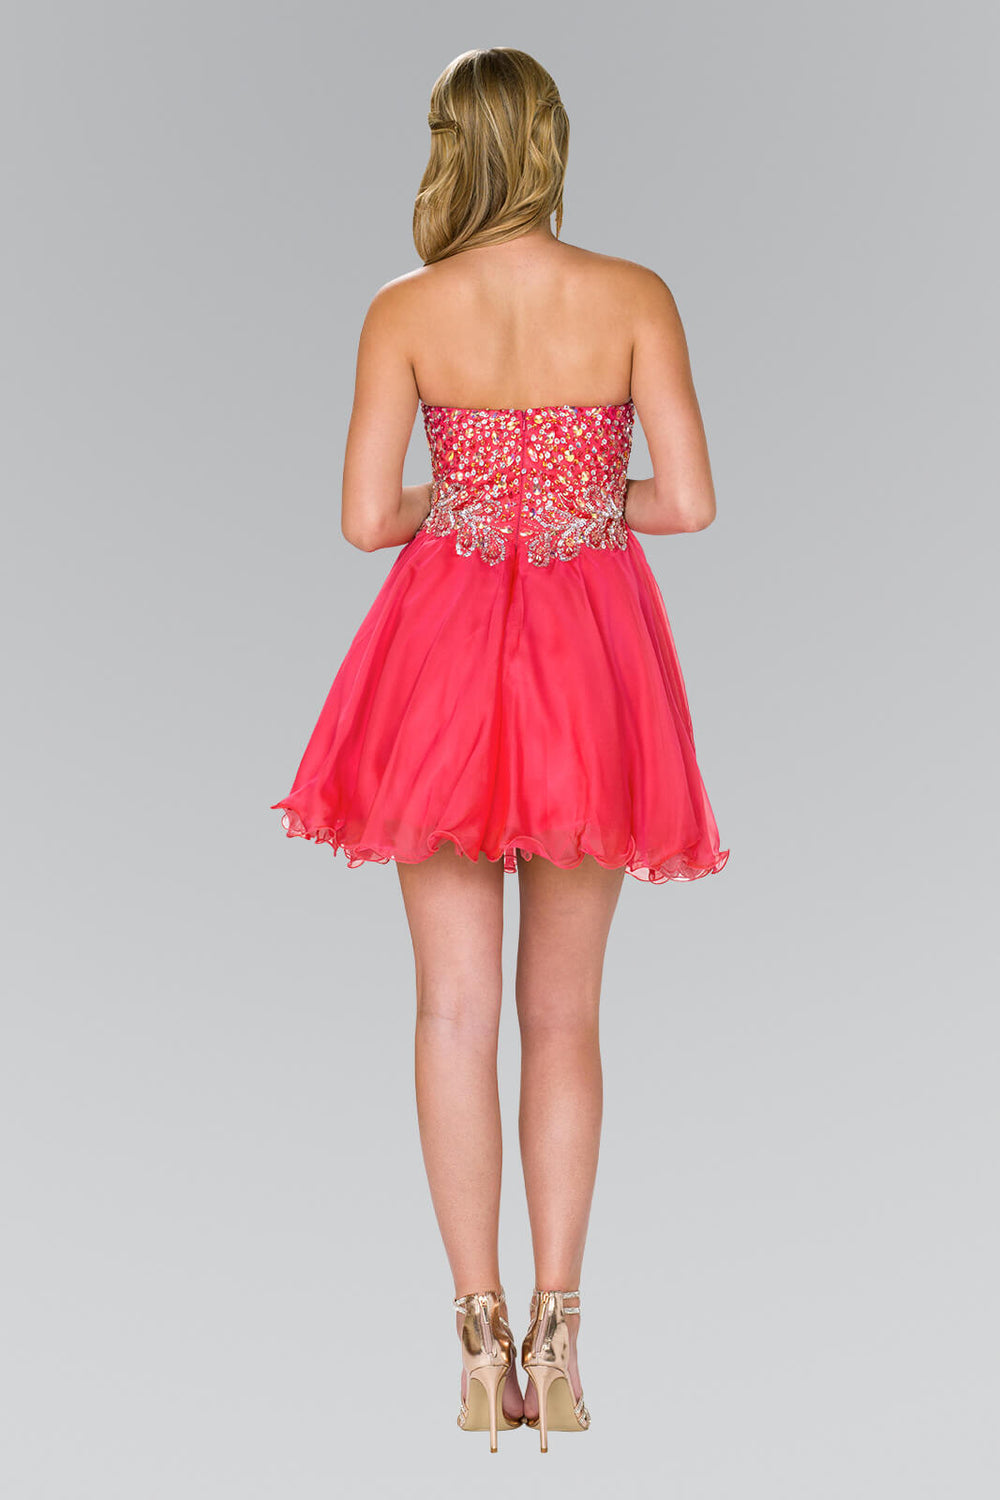 Strapless Prom Short Dress Homecoming - The Dress Outlet